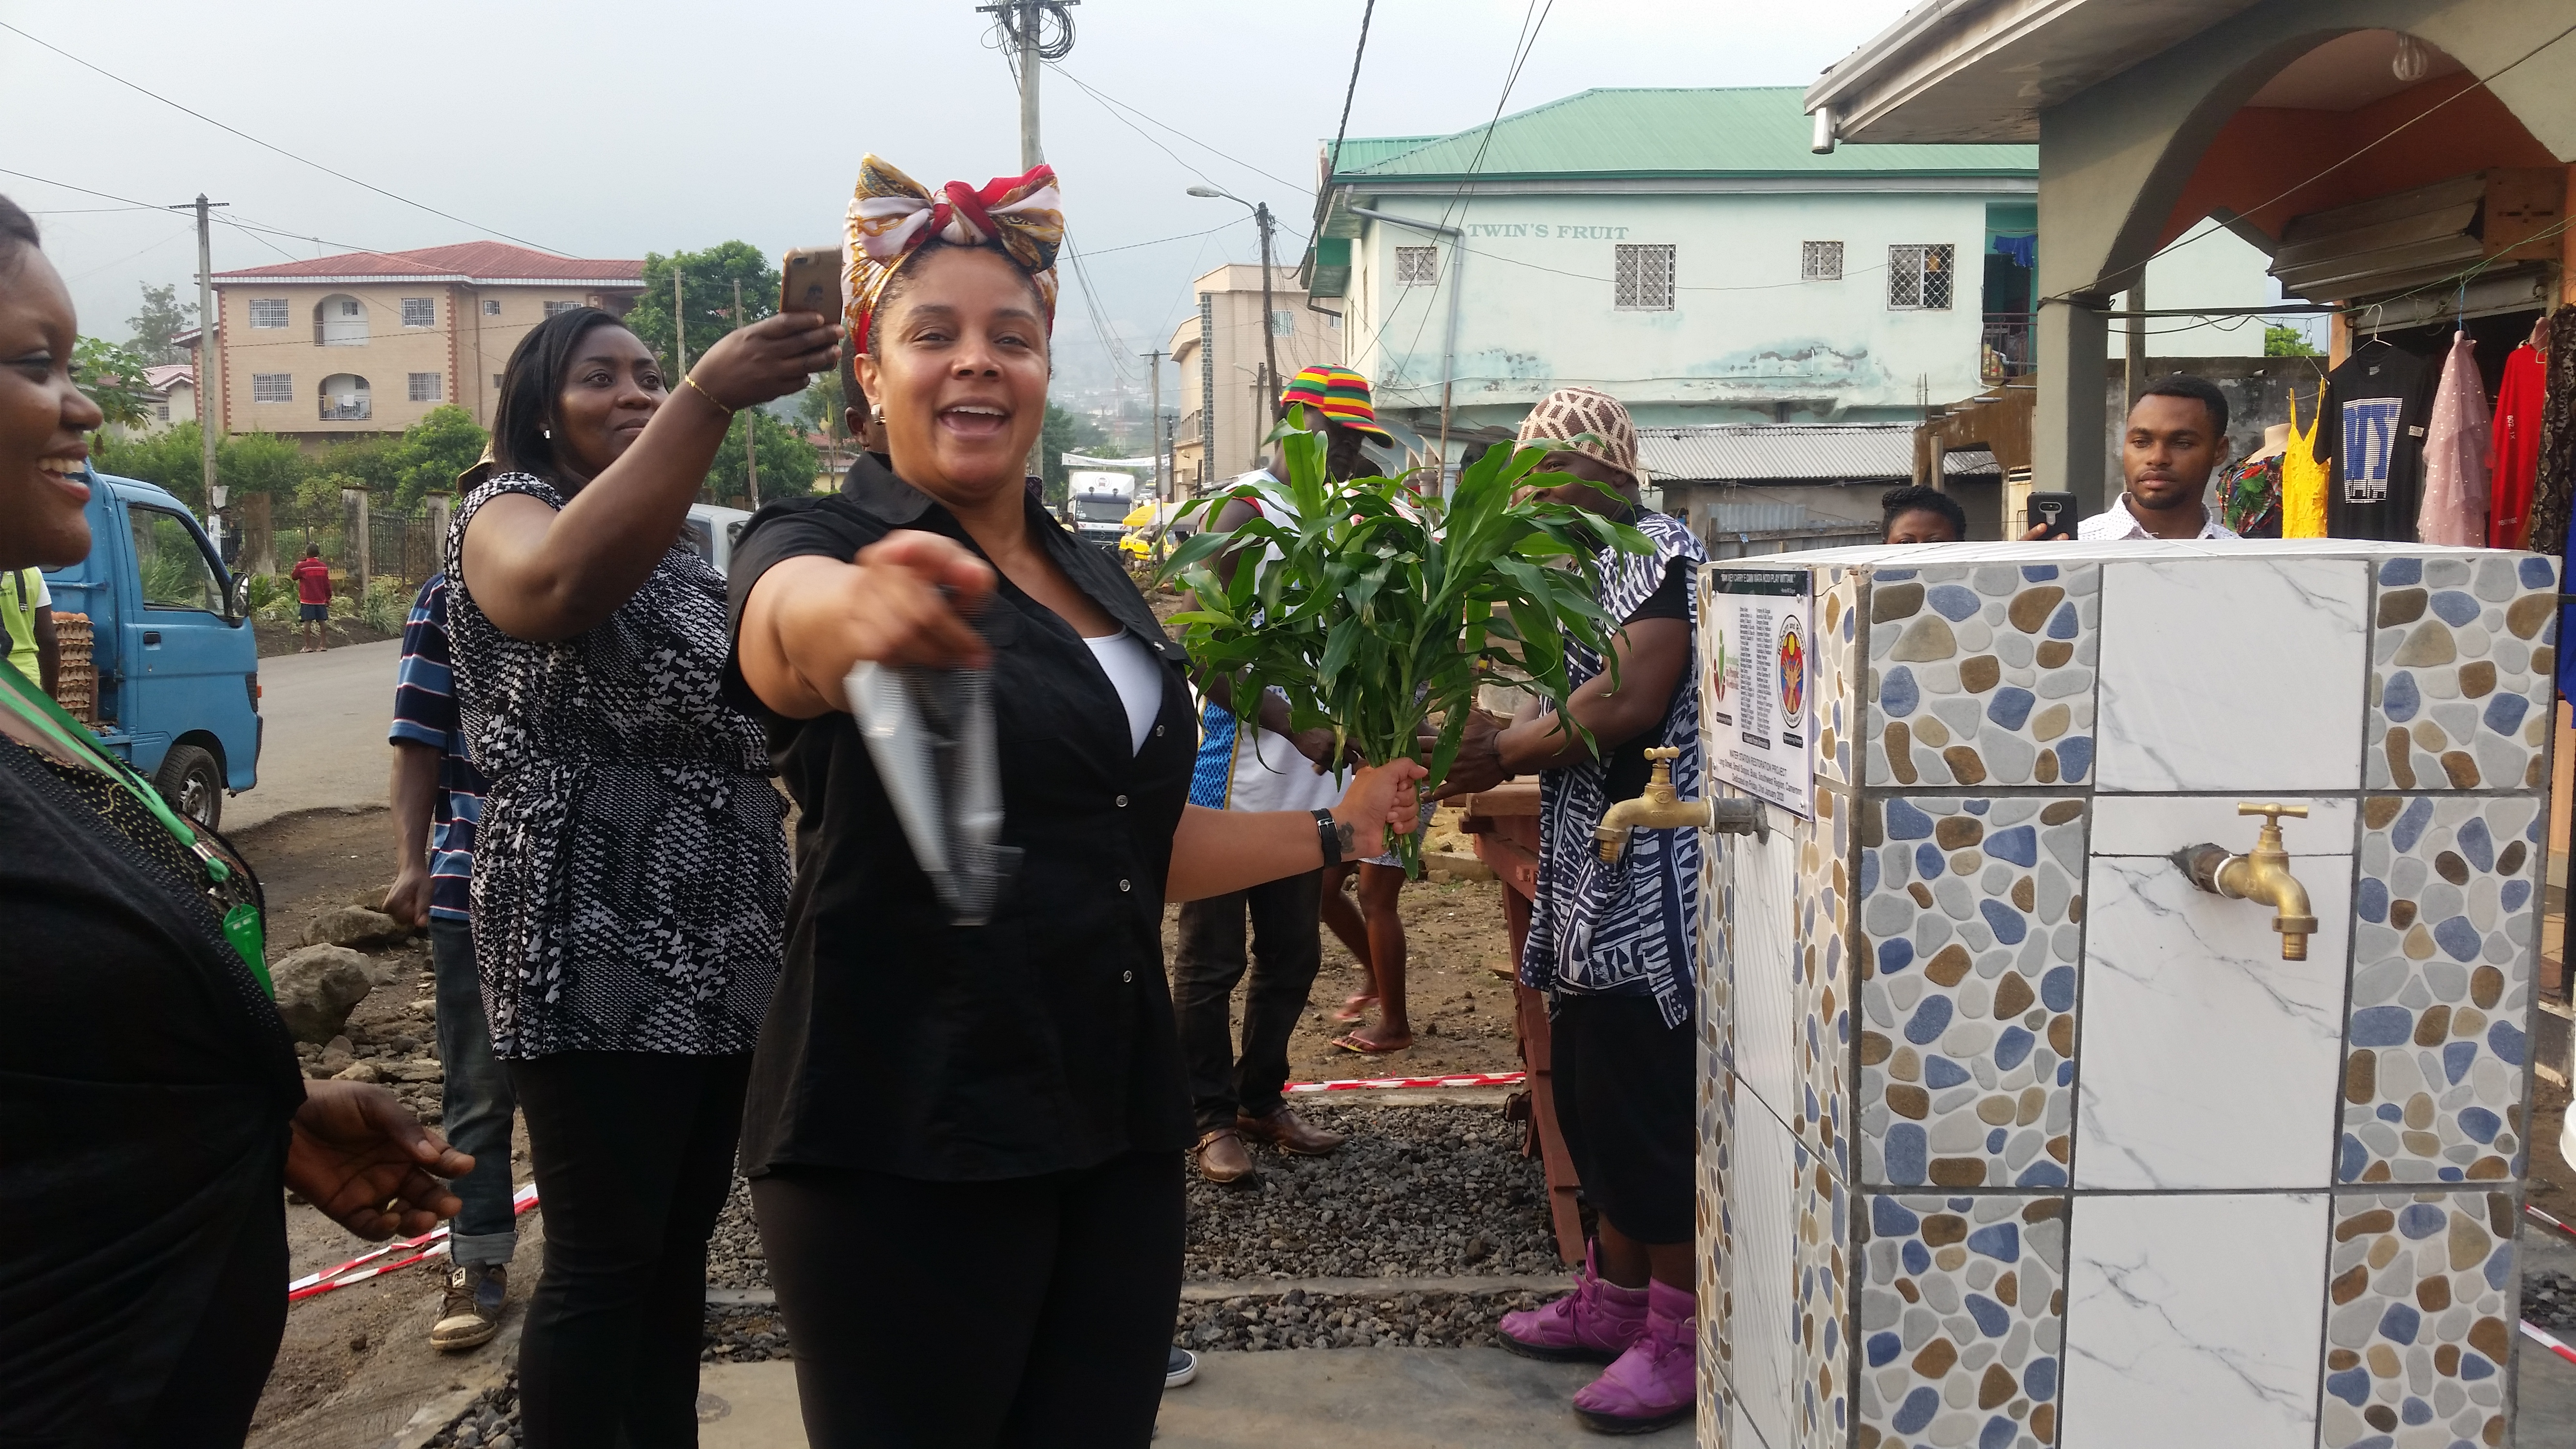 Mrs Renėe Duguė from Reborn and Rising (USA) Commissions the Water Station Restoration Project as Ruth Bisong, IPW Director looks on